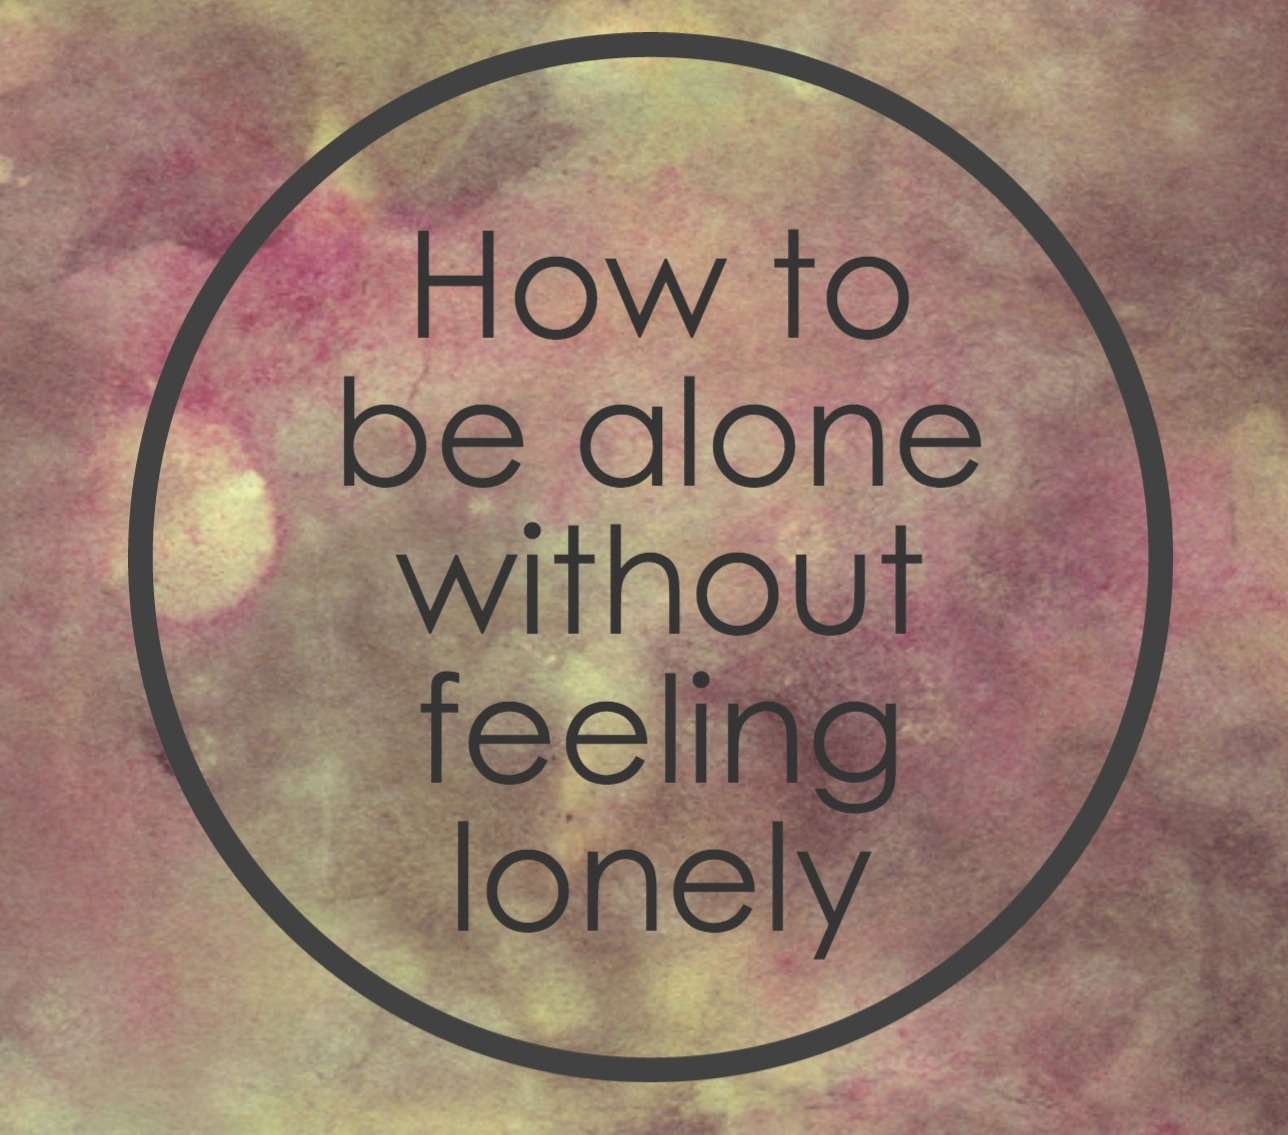 Introverted and lonely